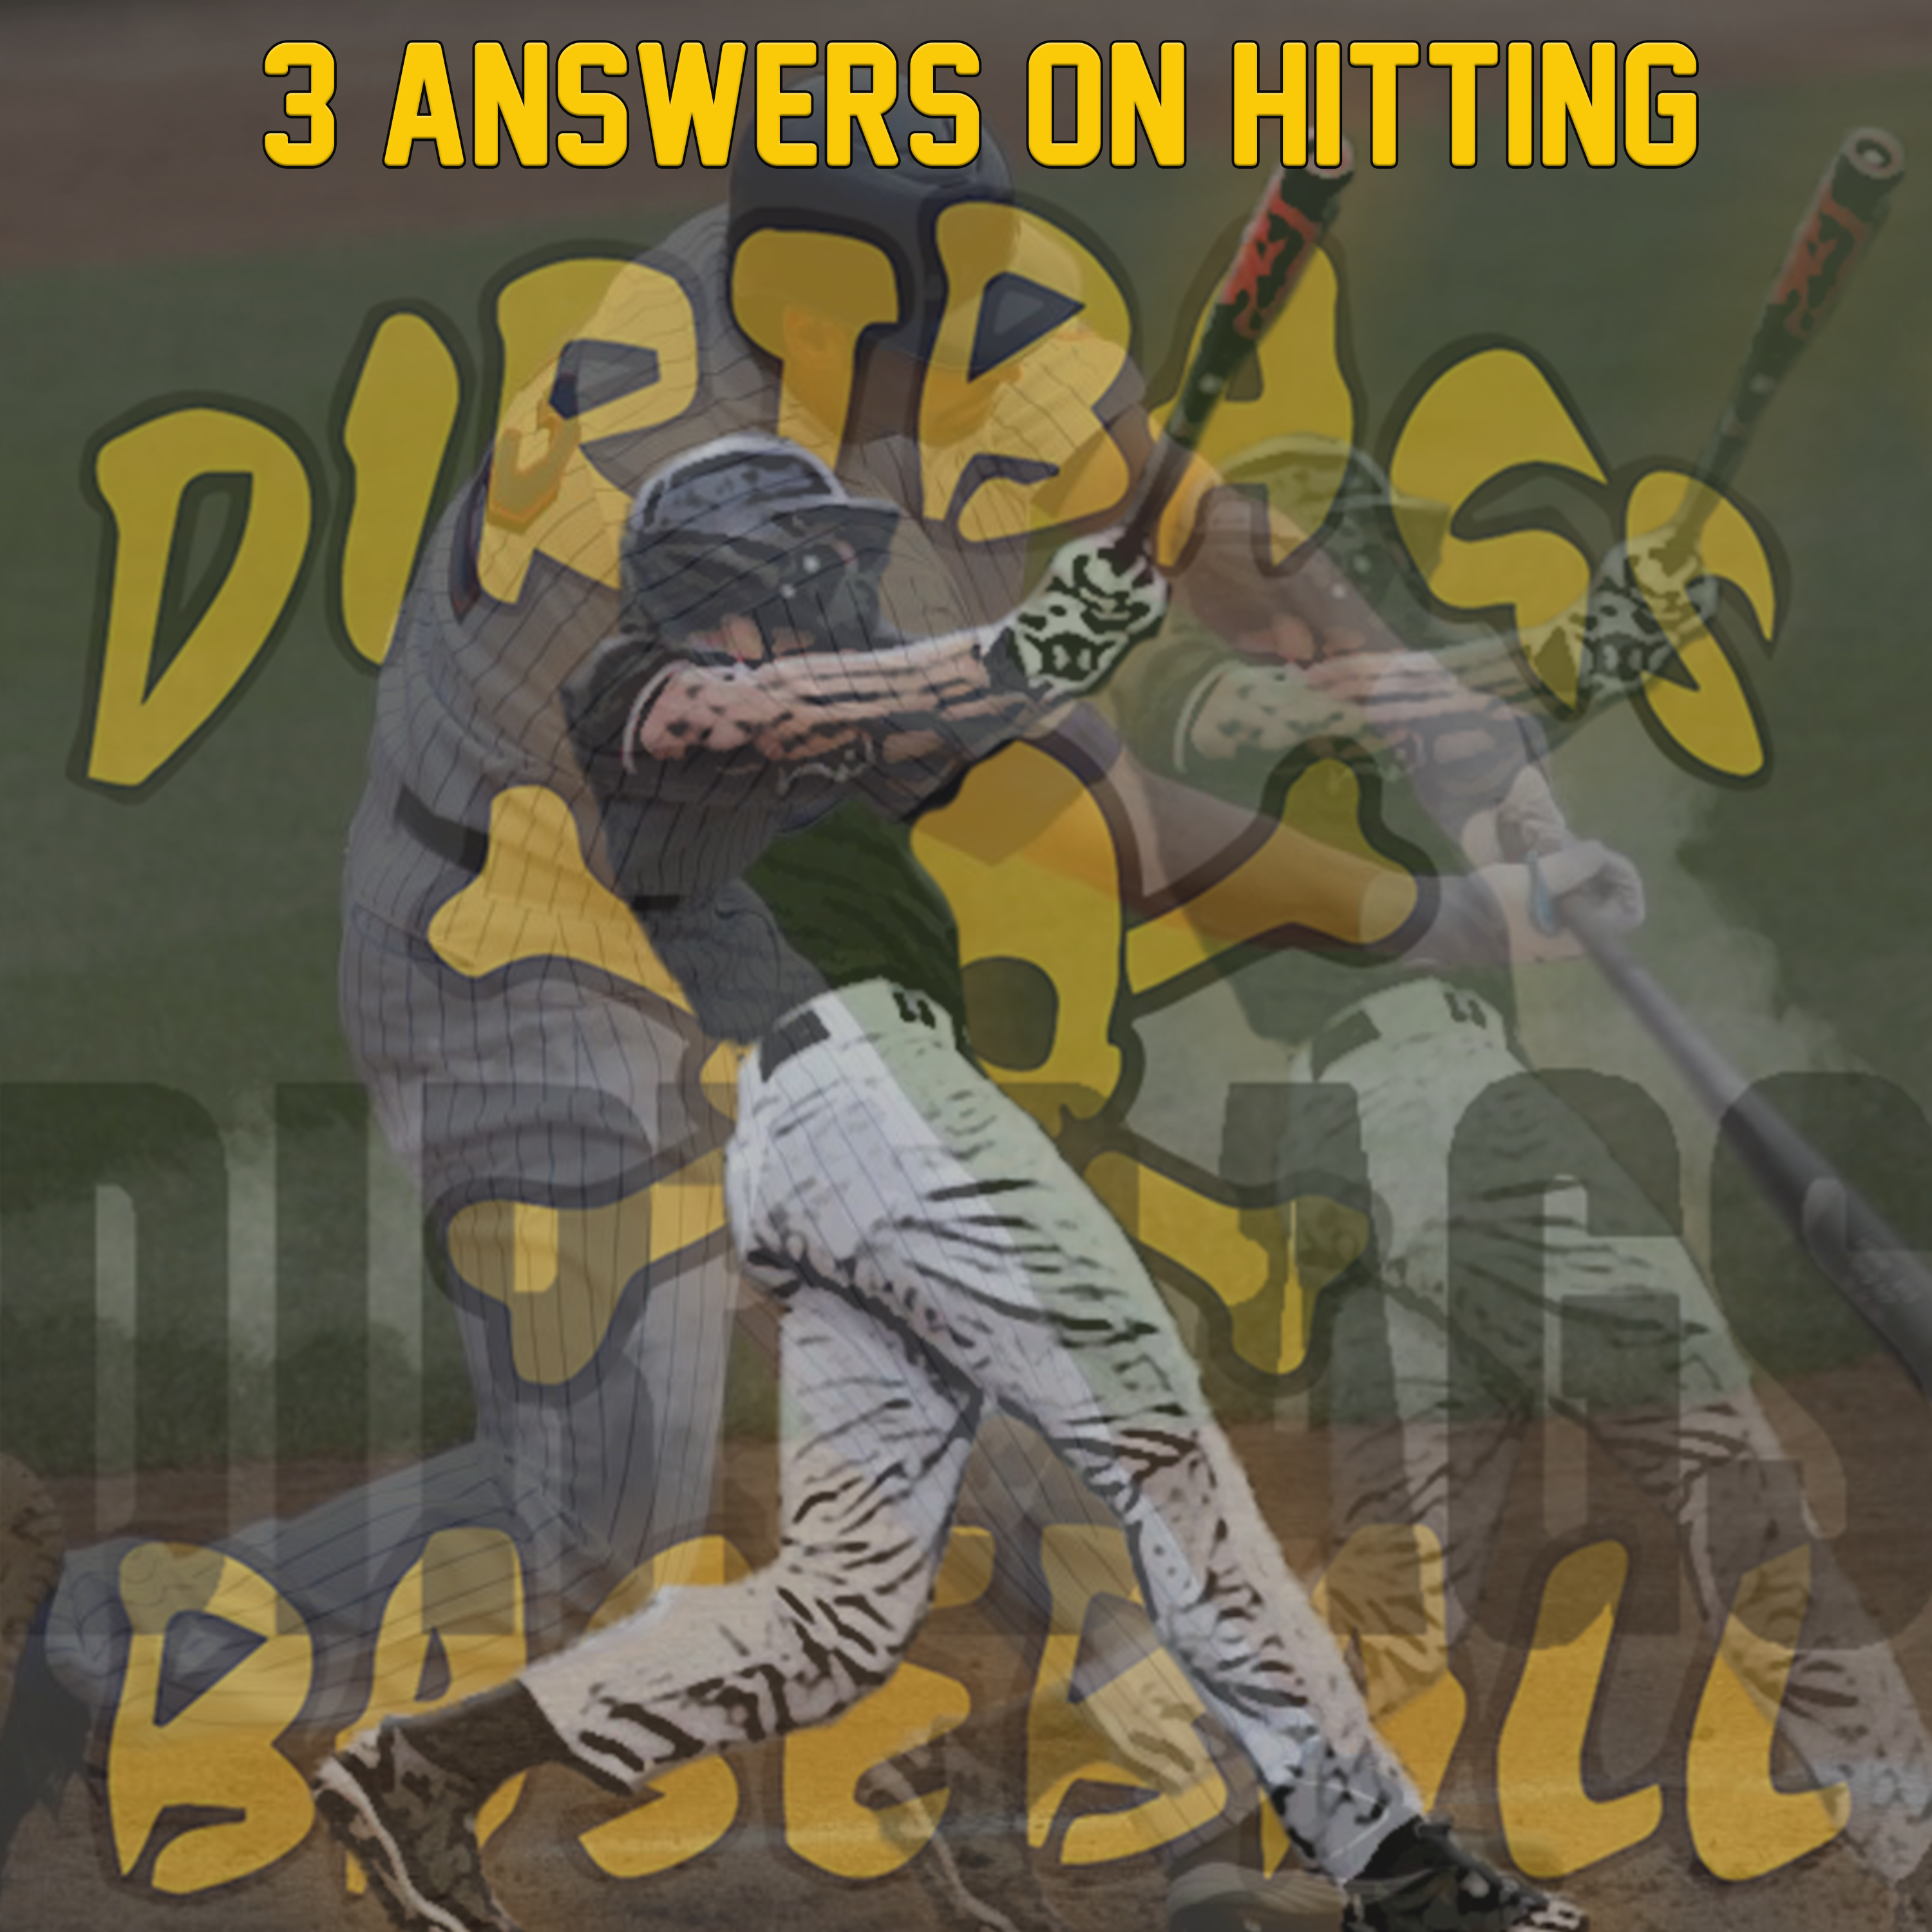 Instructional Friday: 3 Answers On Hitting (Article 2)